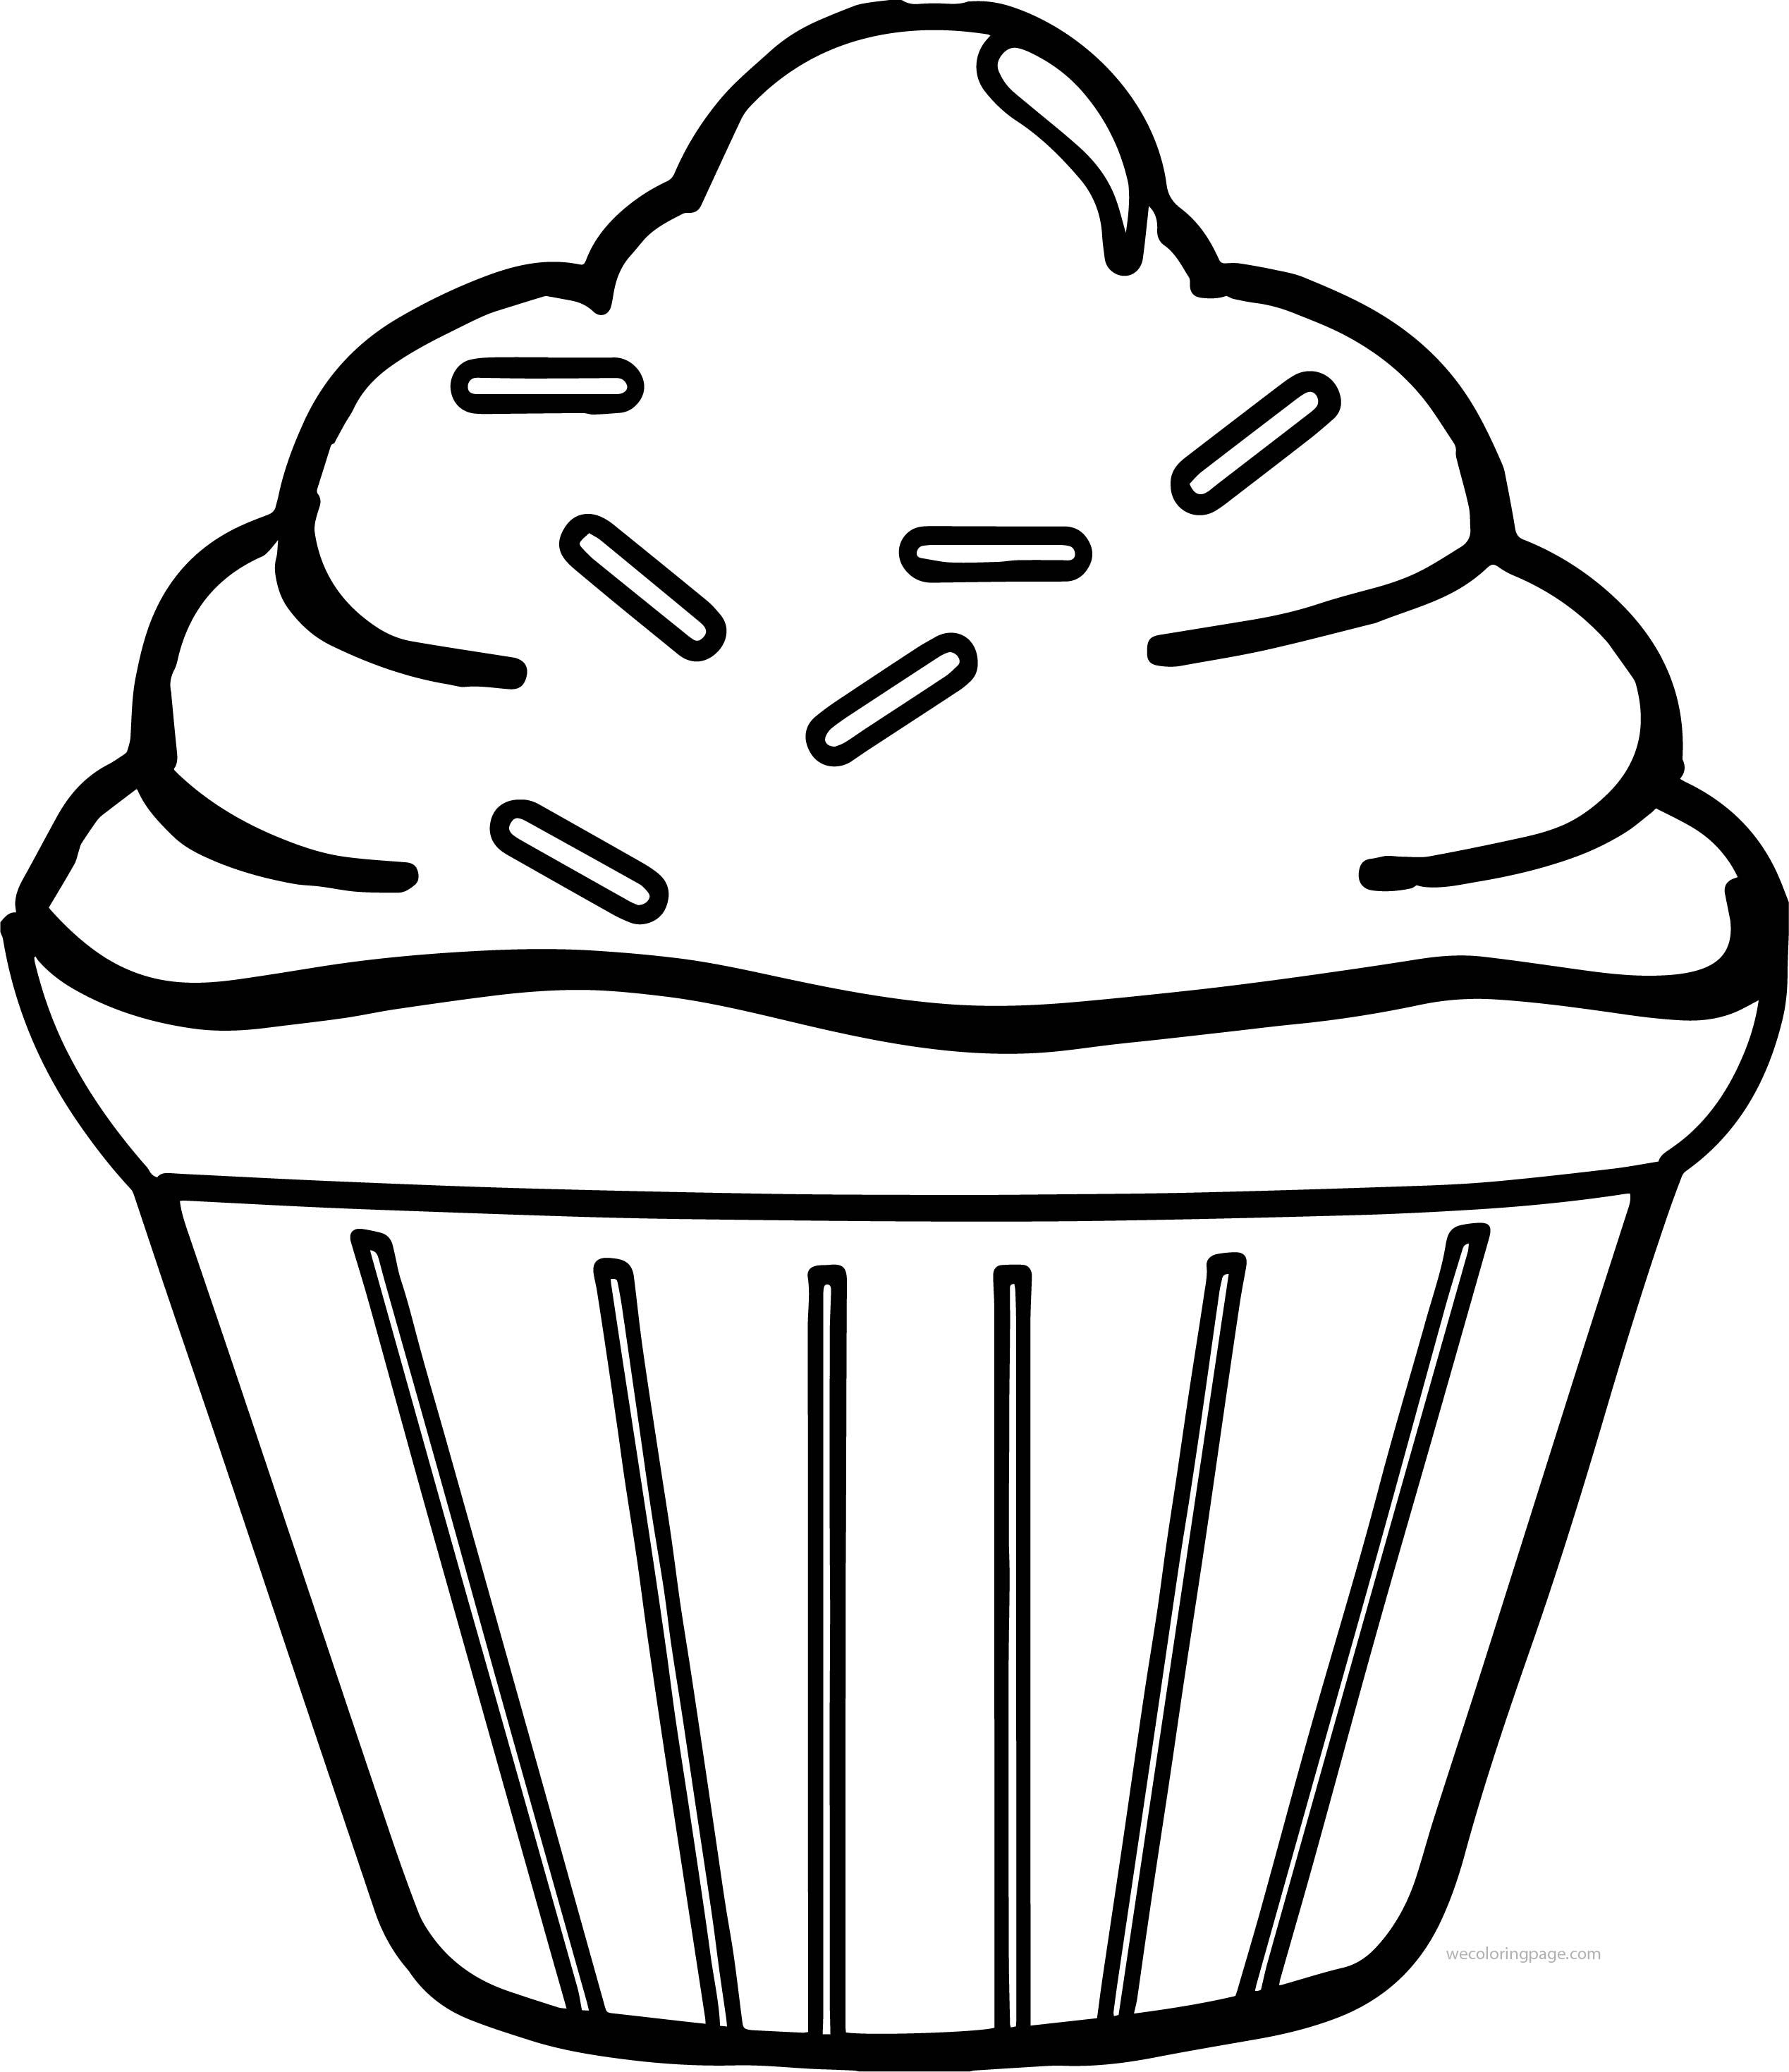 Cool Simple Cupcake Coloring Page